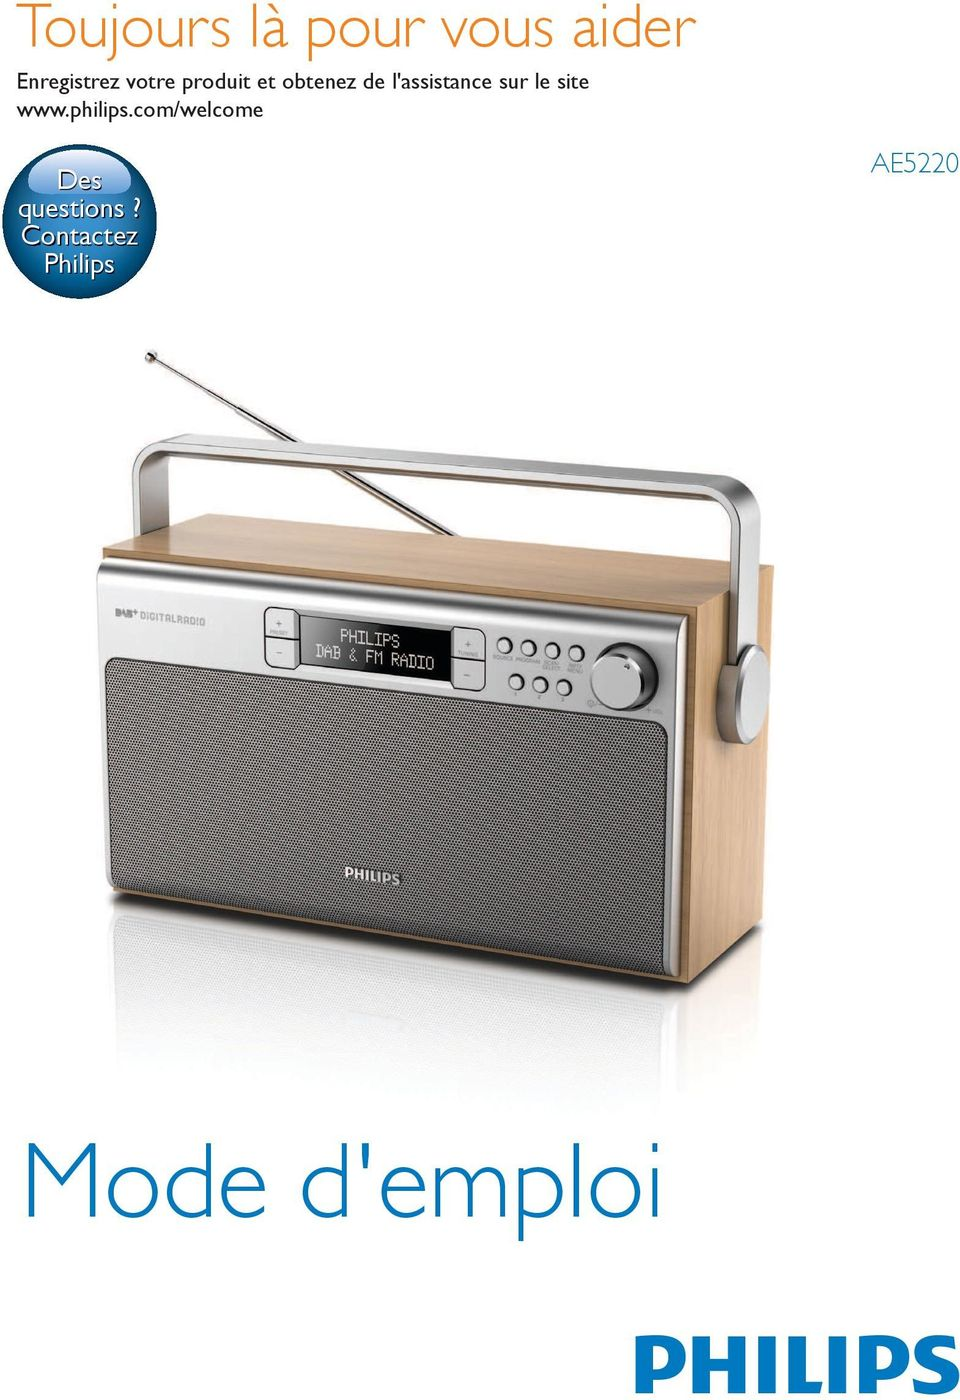 sur le site www.philips.